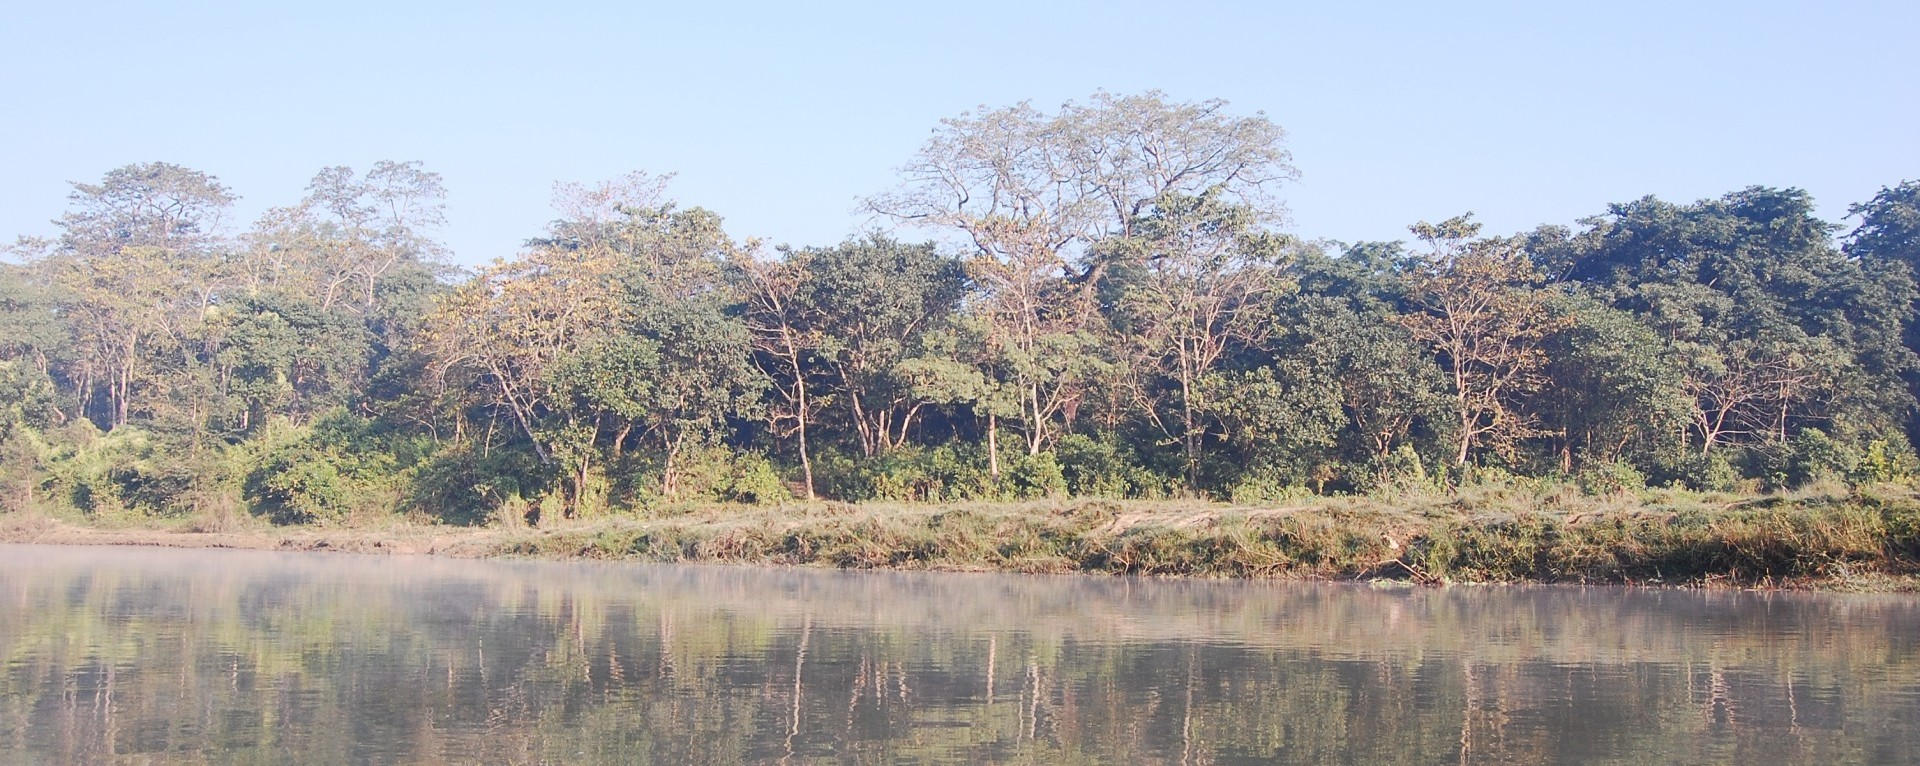 The National park forest beside the rapti river.